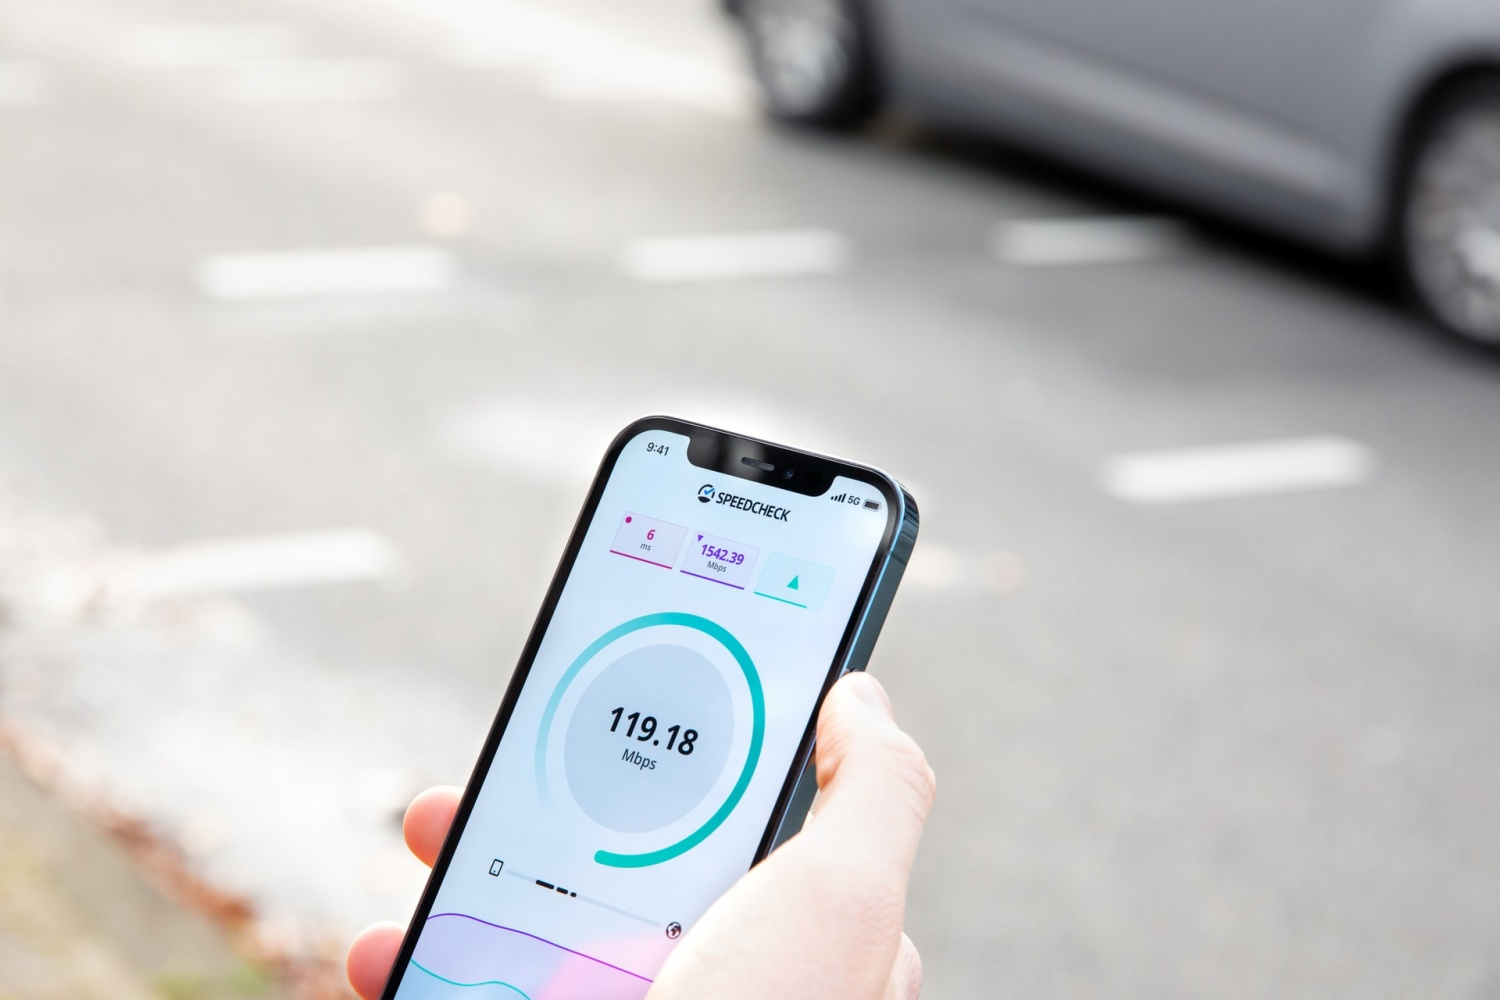 Frustrated About Your iPhone's Slow Data Speed? 6 Tips to Boost Your Connection